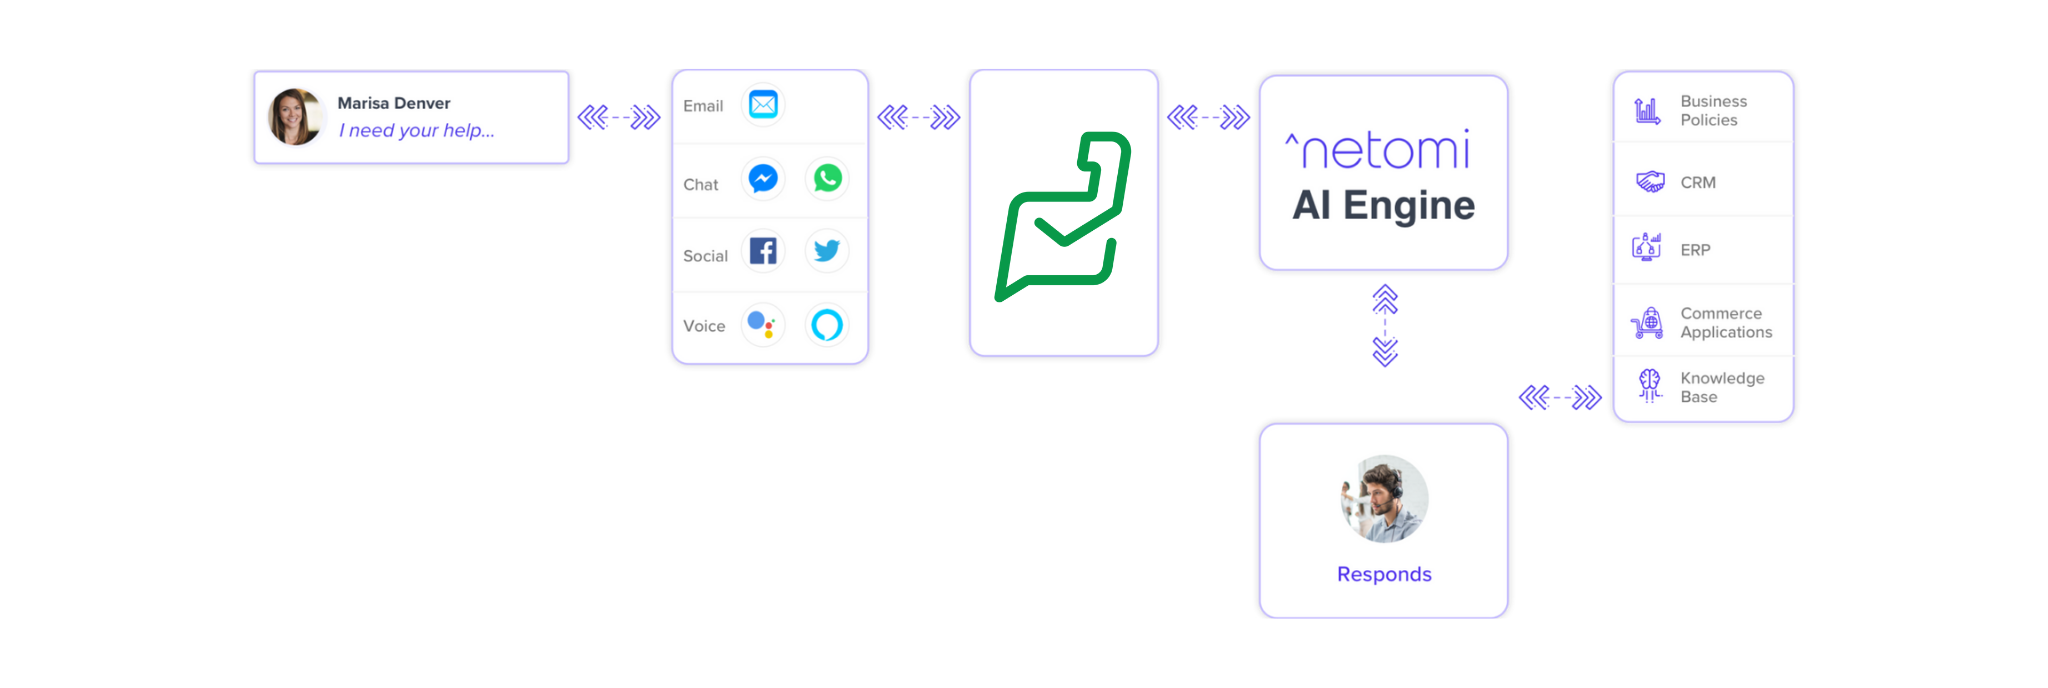 From customer request to resolution. How the AI chatbot will function across the support tech stack.